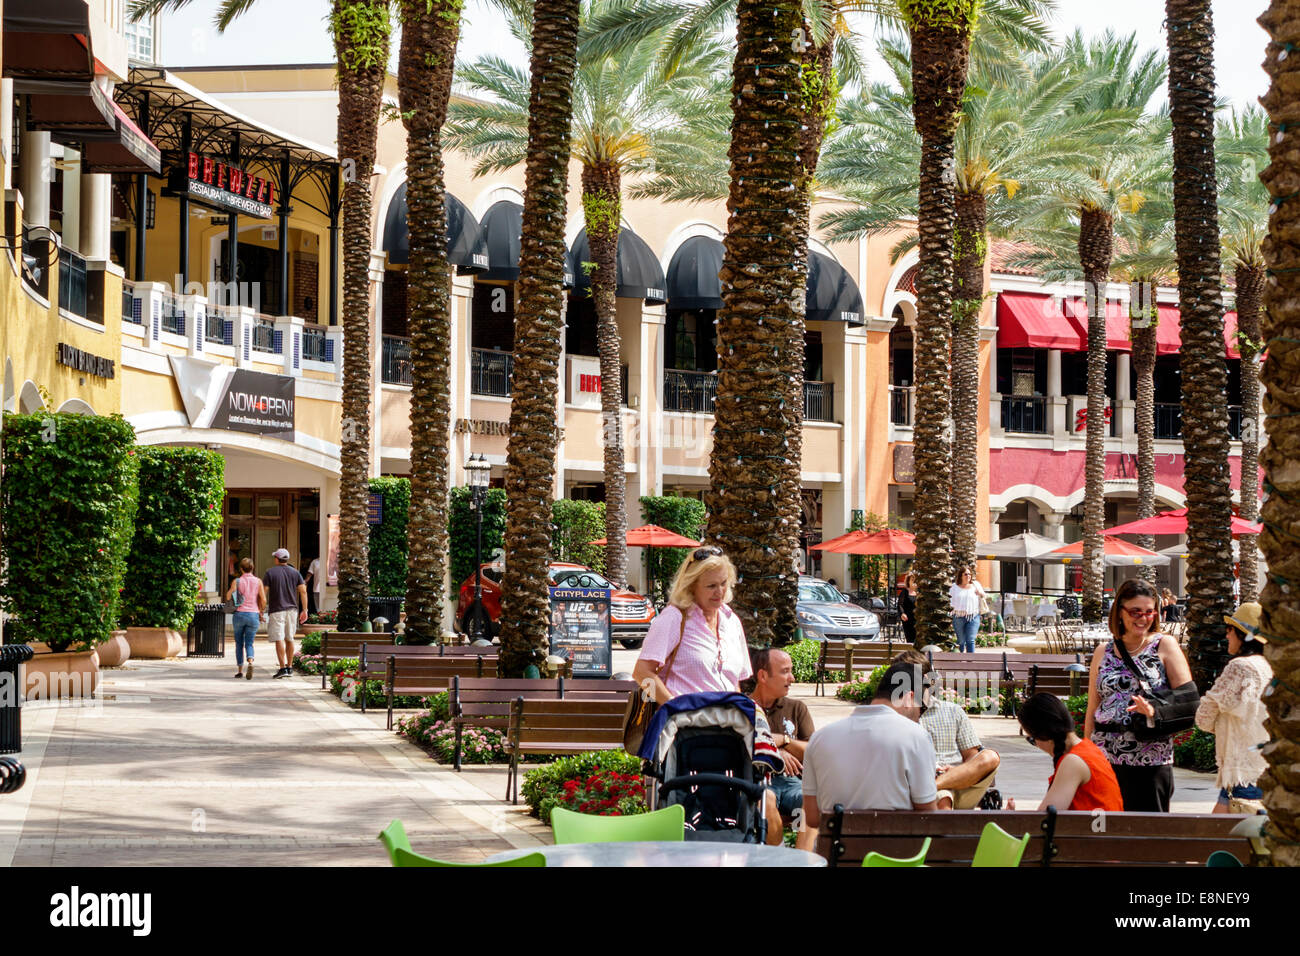 West Palm Beach Shopping Downtown West Palm Beach is defined by its mix of national brands and local retailers, international dining and nightlife, and cultural venues flavored with years of history.